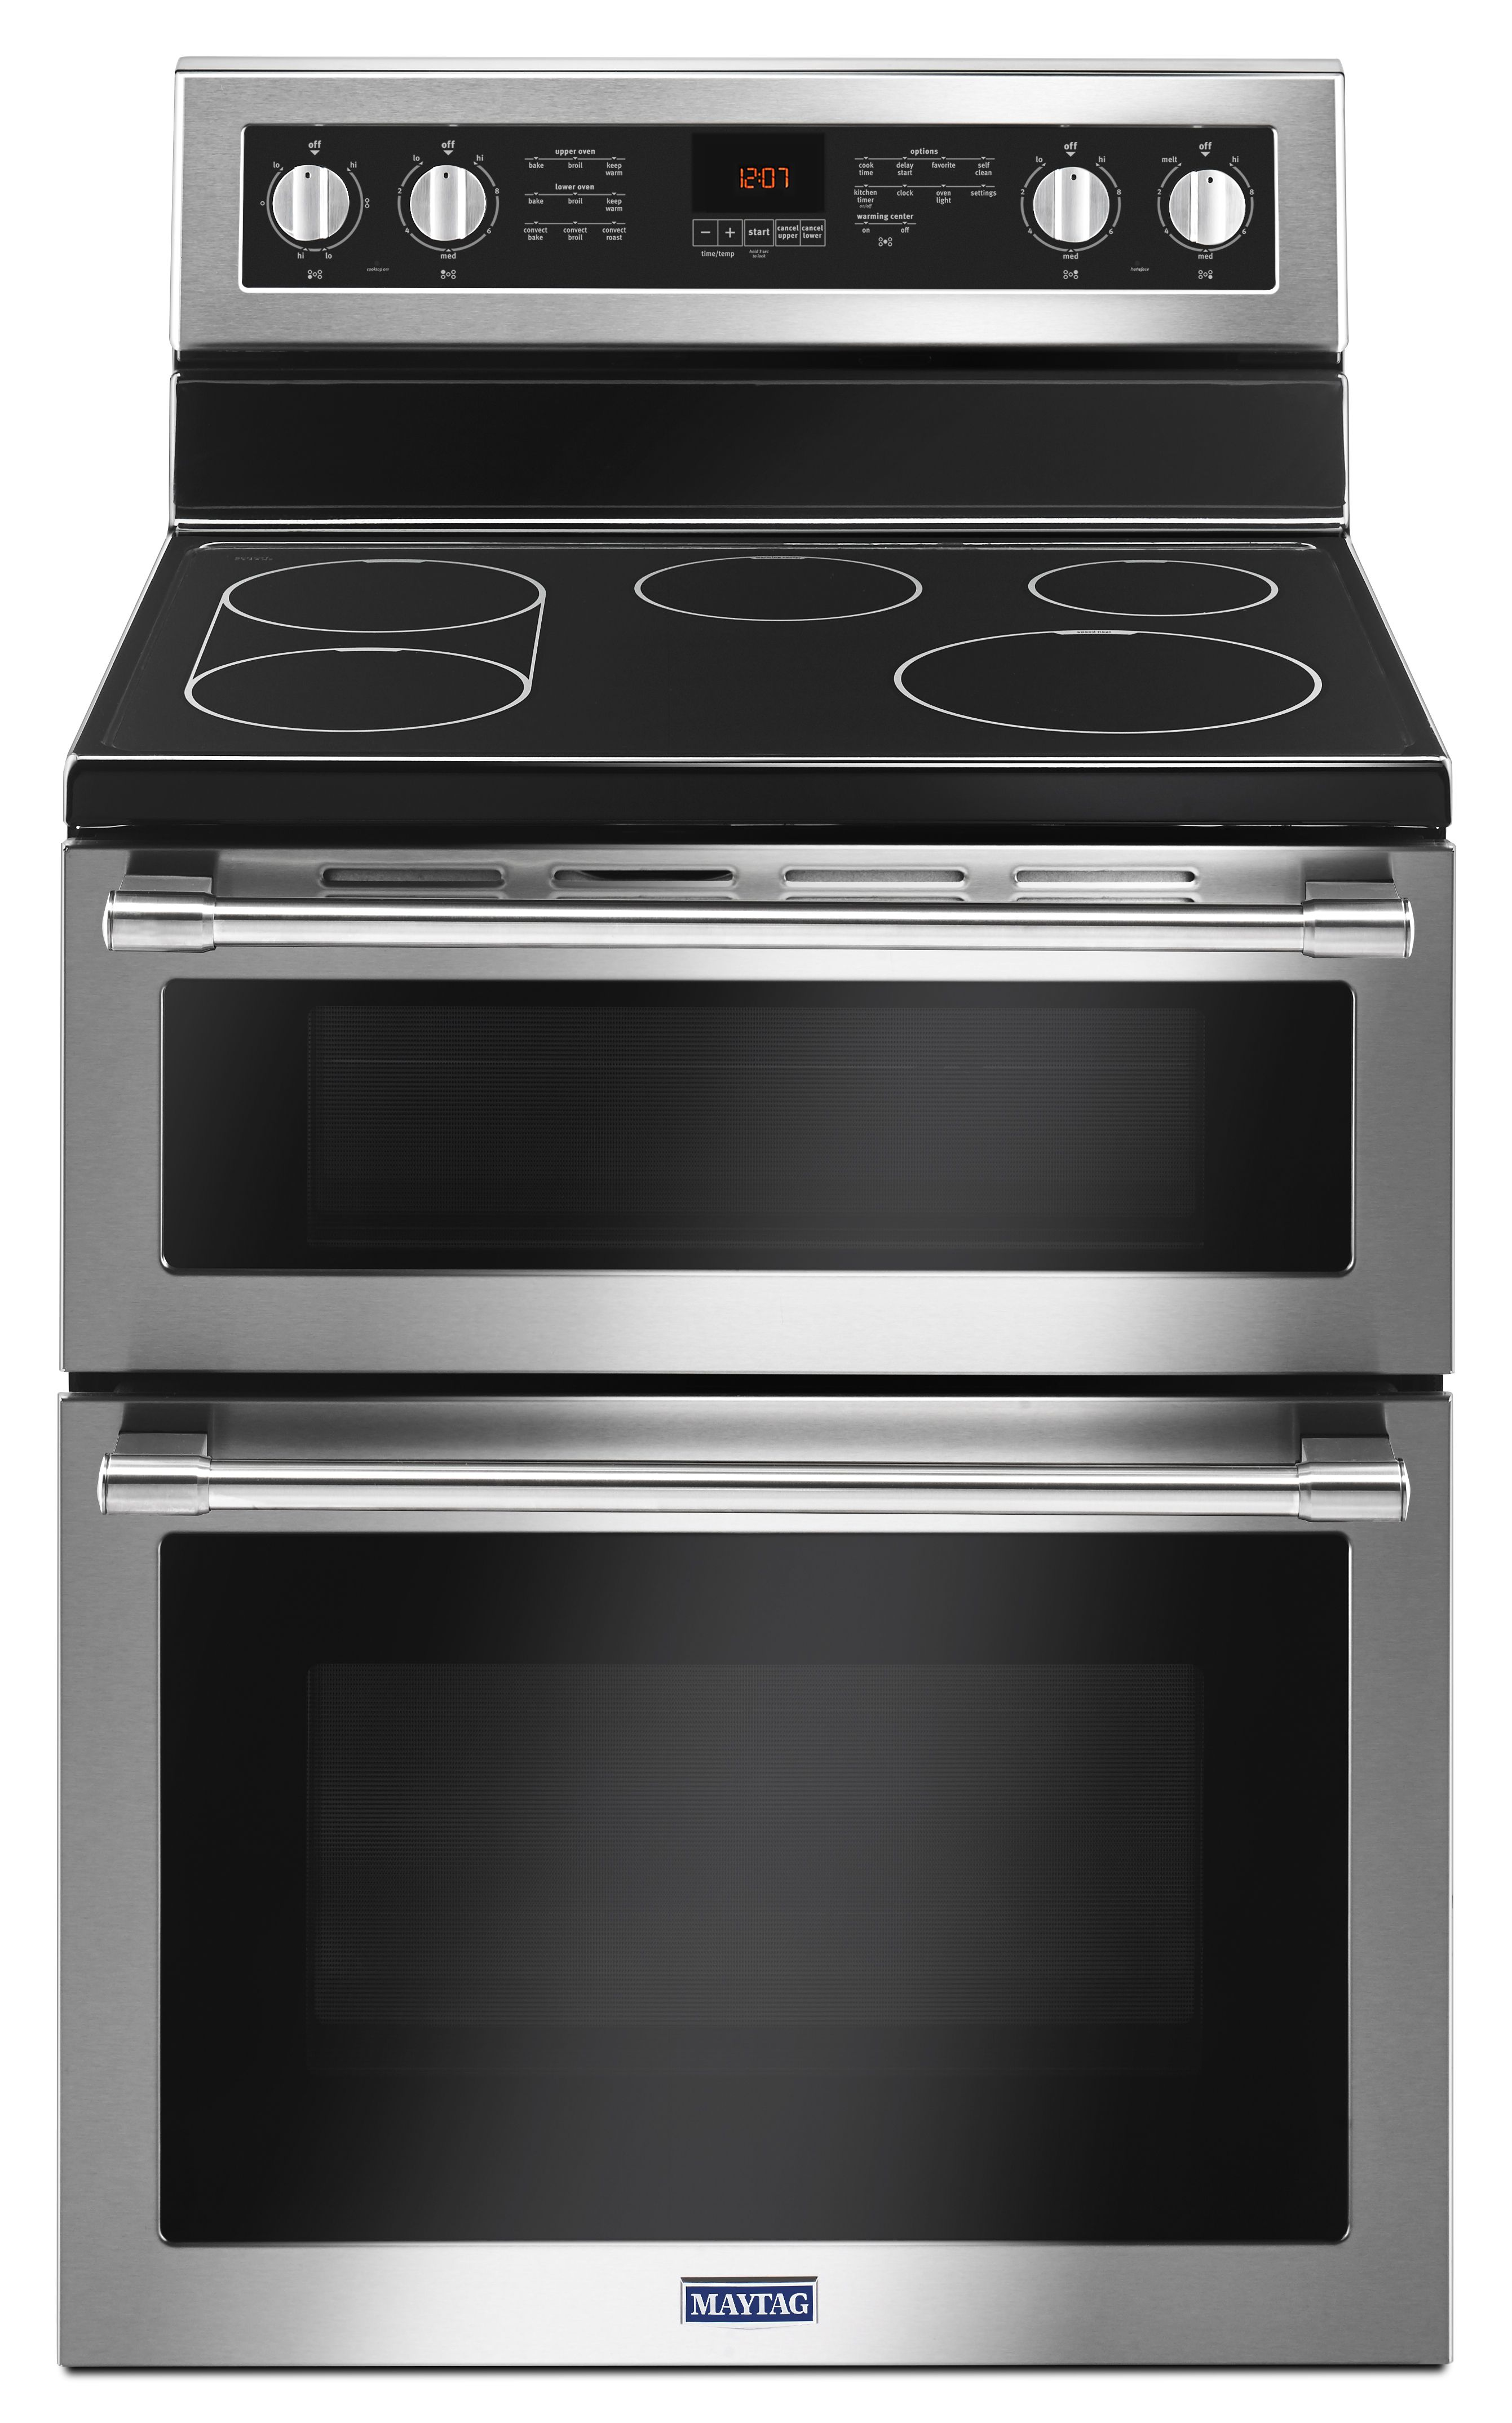 Maytag MET8800FZ Double Oven Range with True Convection - Built to ...